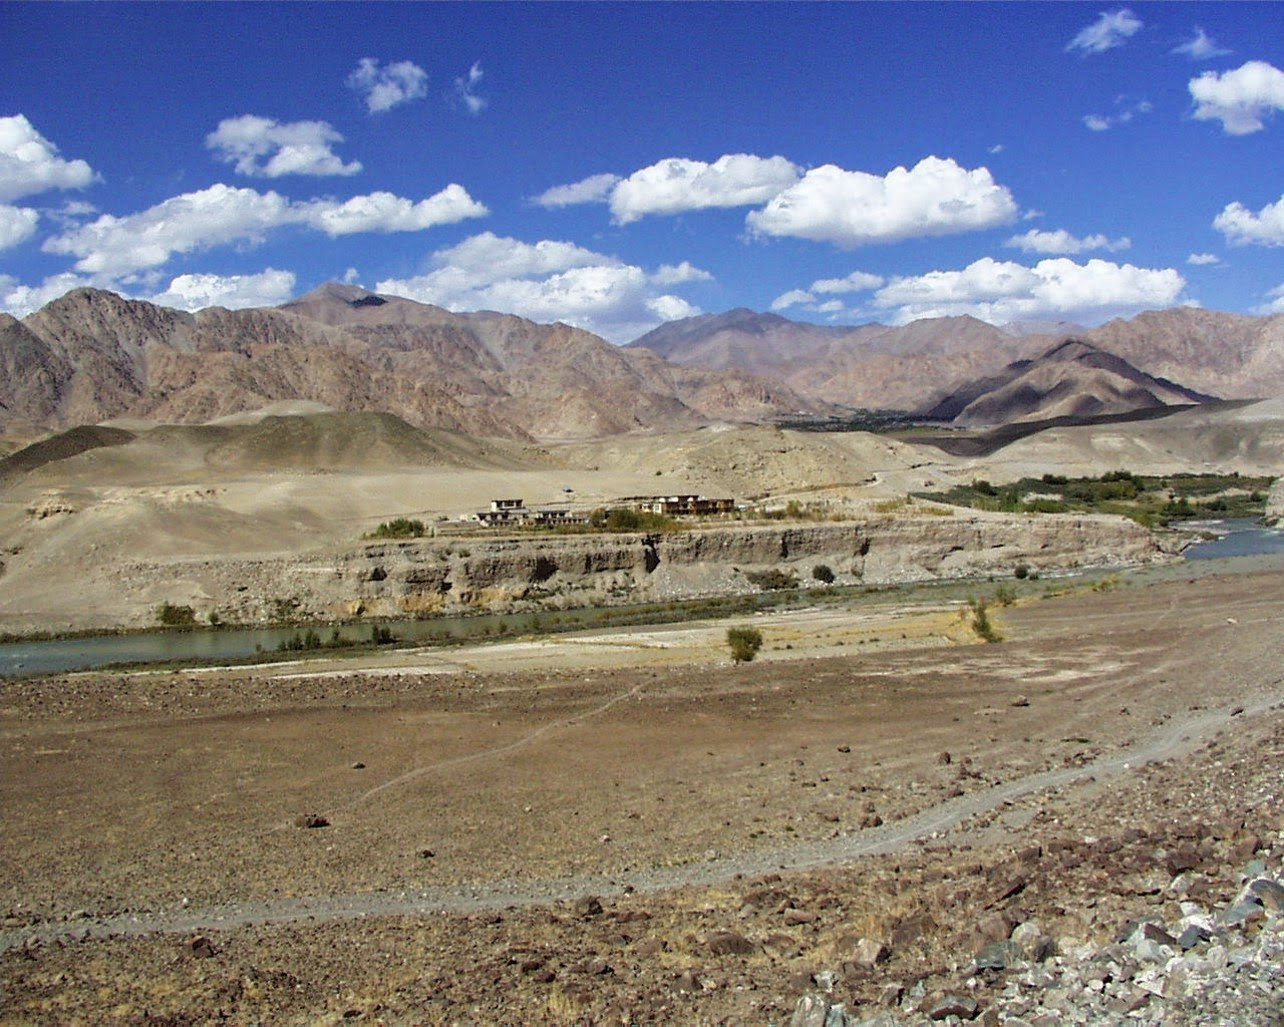 Ladakh is beset with drinking water problems